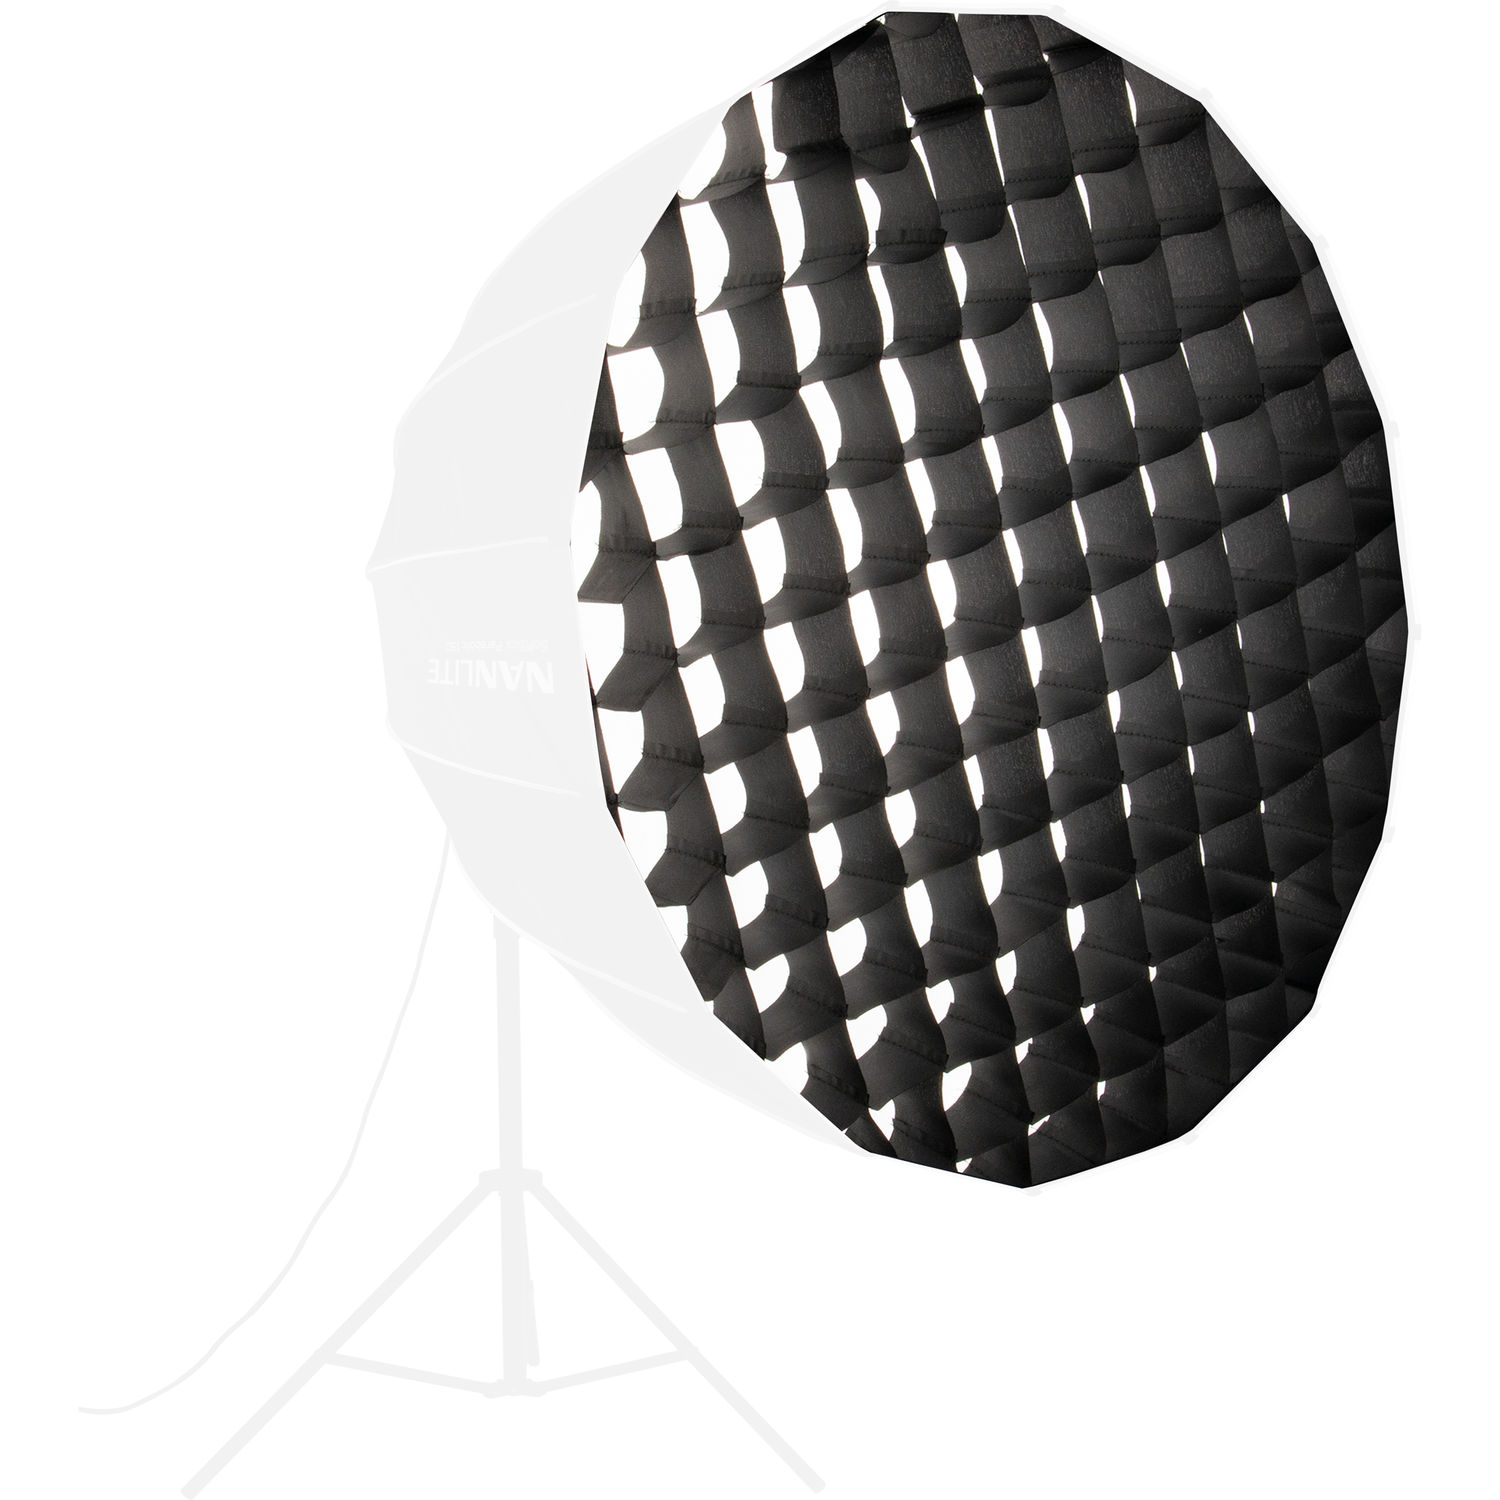 Nanlite EC-PR150 Fabric Grid for Parabolic Light Dome Softbox 150cm